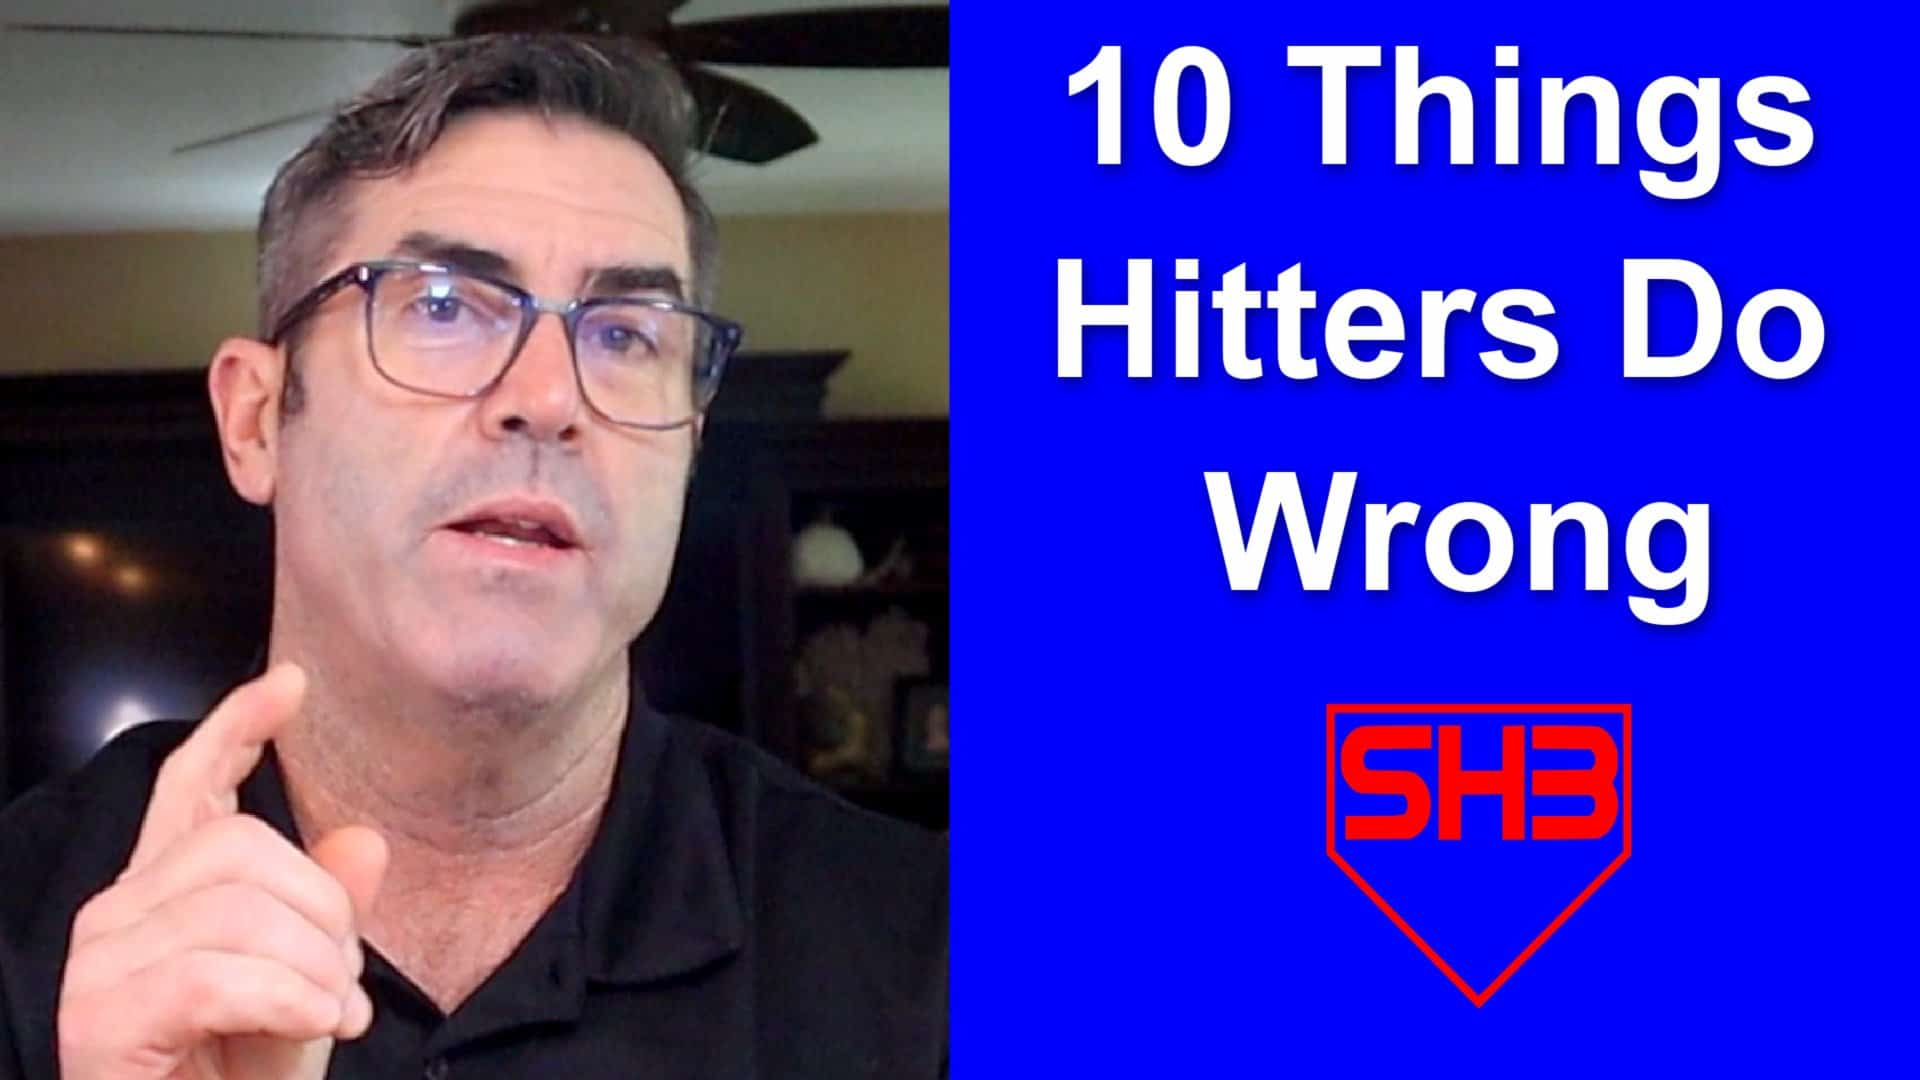 10 Things Hitters Do Wrong